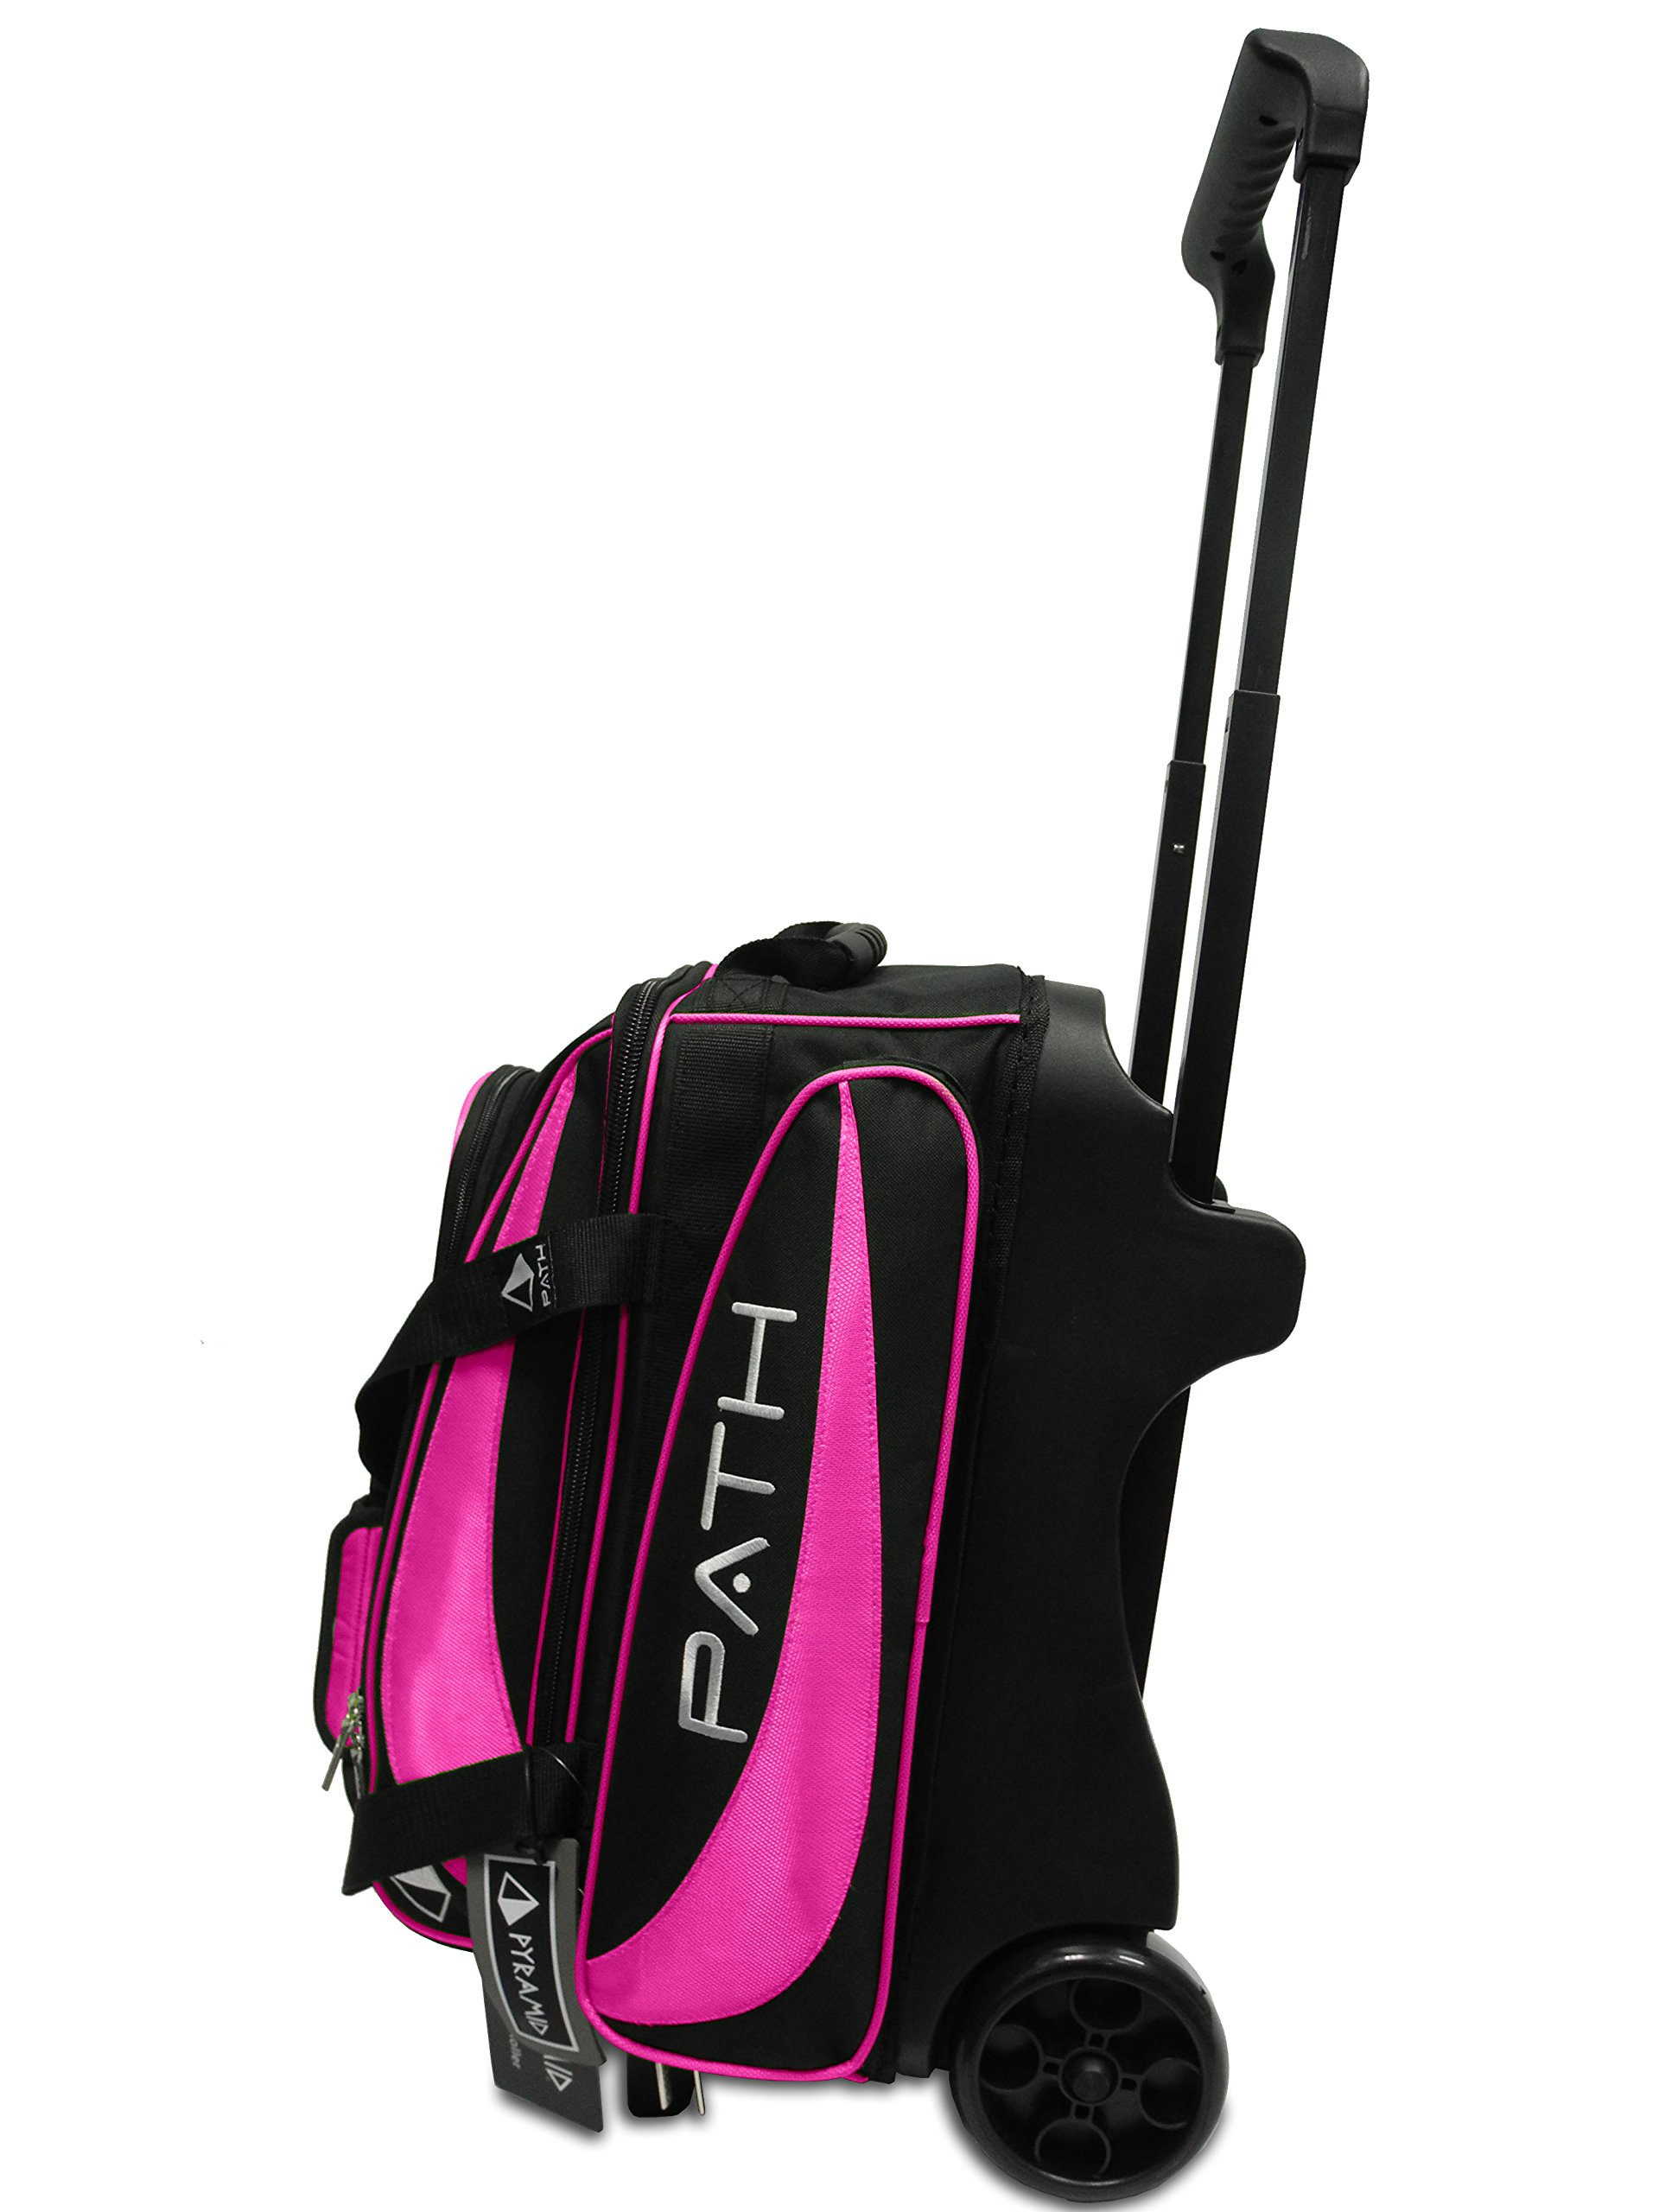 Pyramid Path Premium Deluxe Double Roller Bowling Bag (Black/Hot Pink)